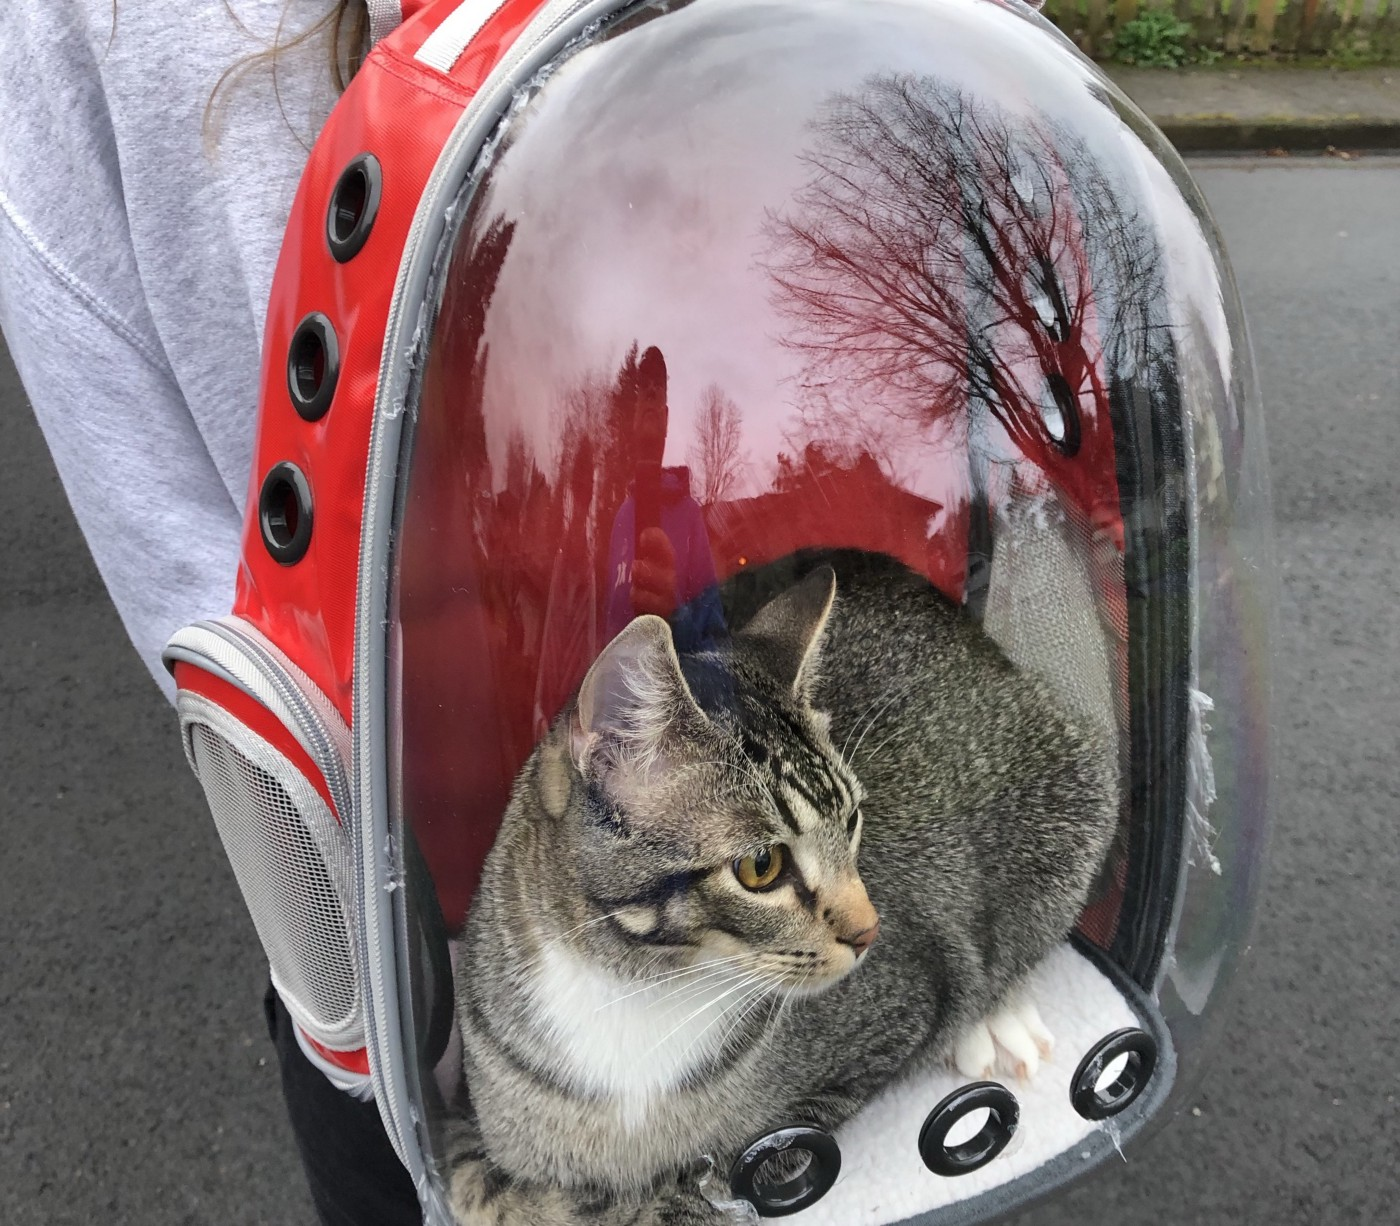 Murray the cat sitting inside a backpack with a clear plastic dome (and airholes) allowing it to look at his surroundings.